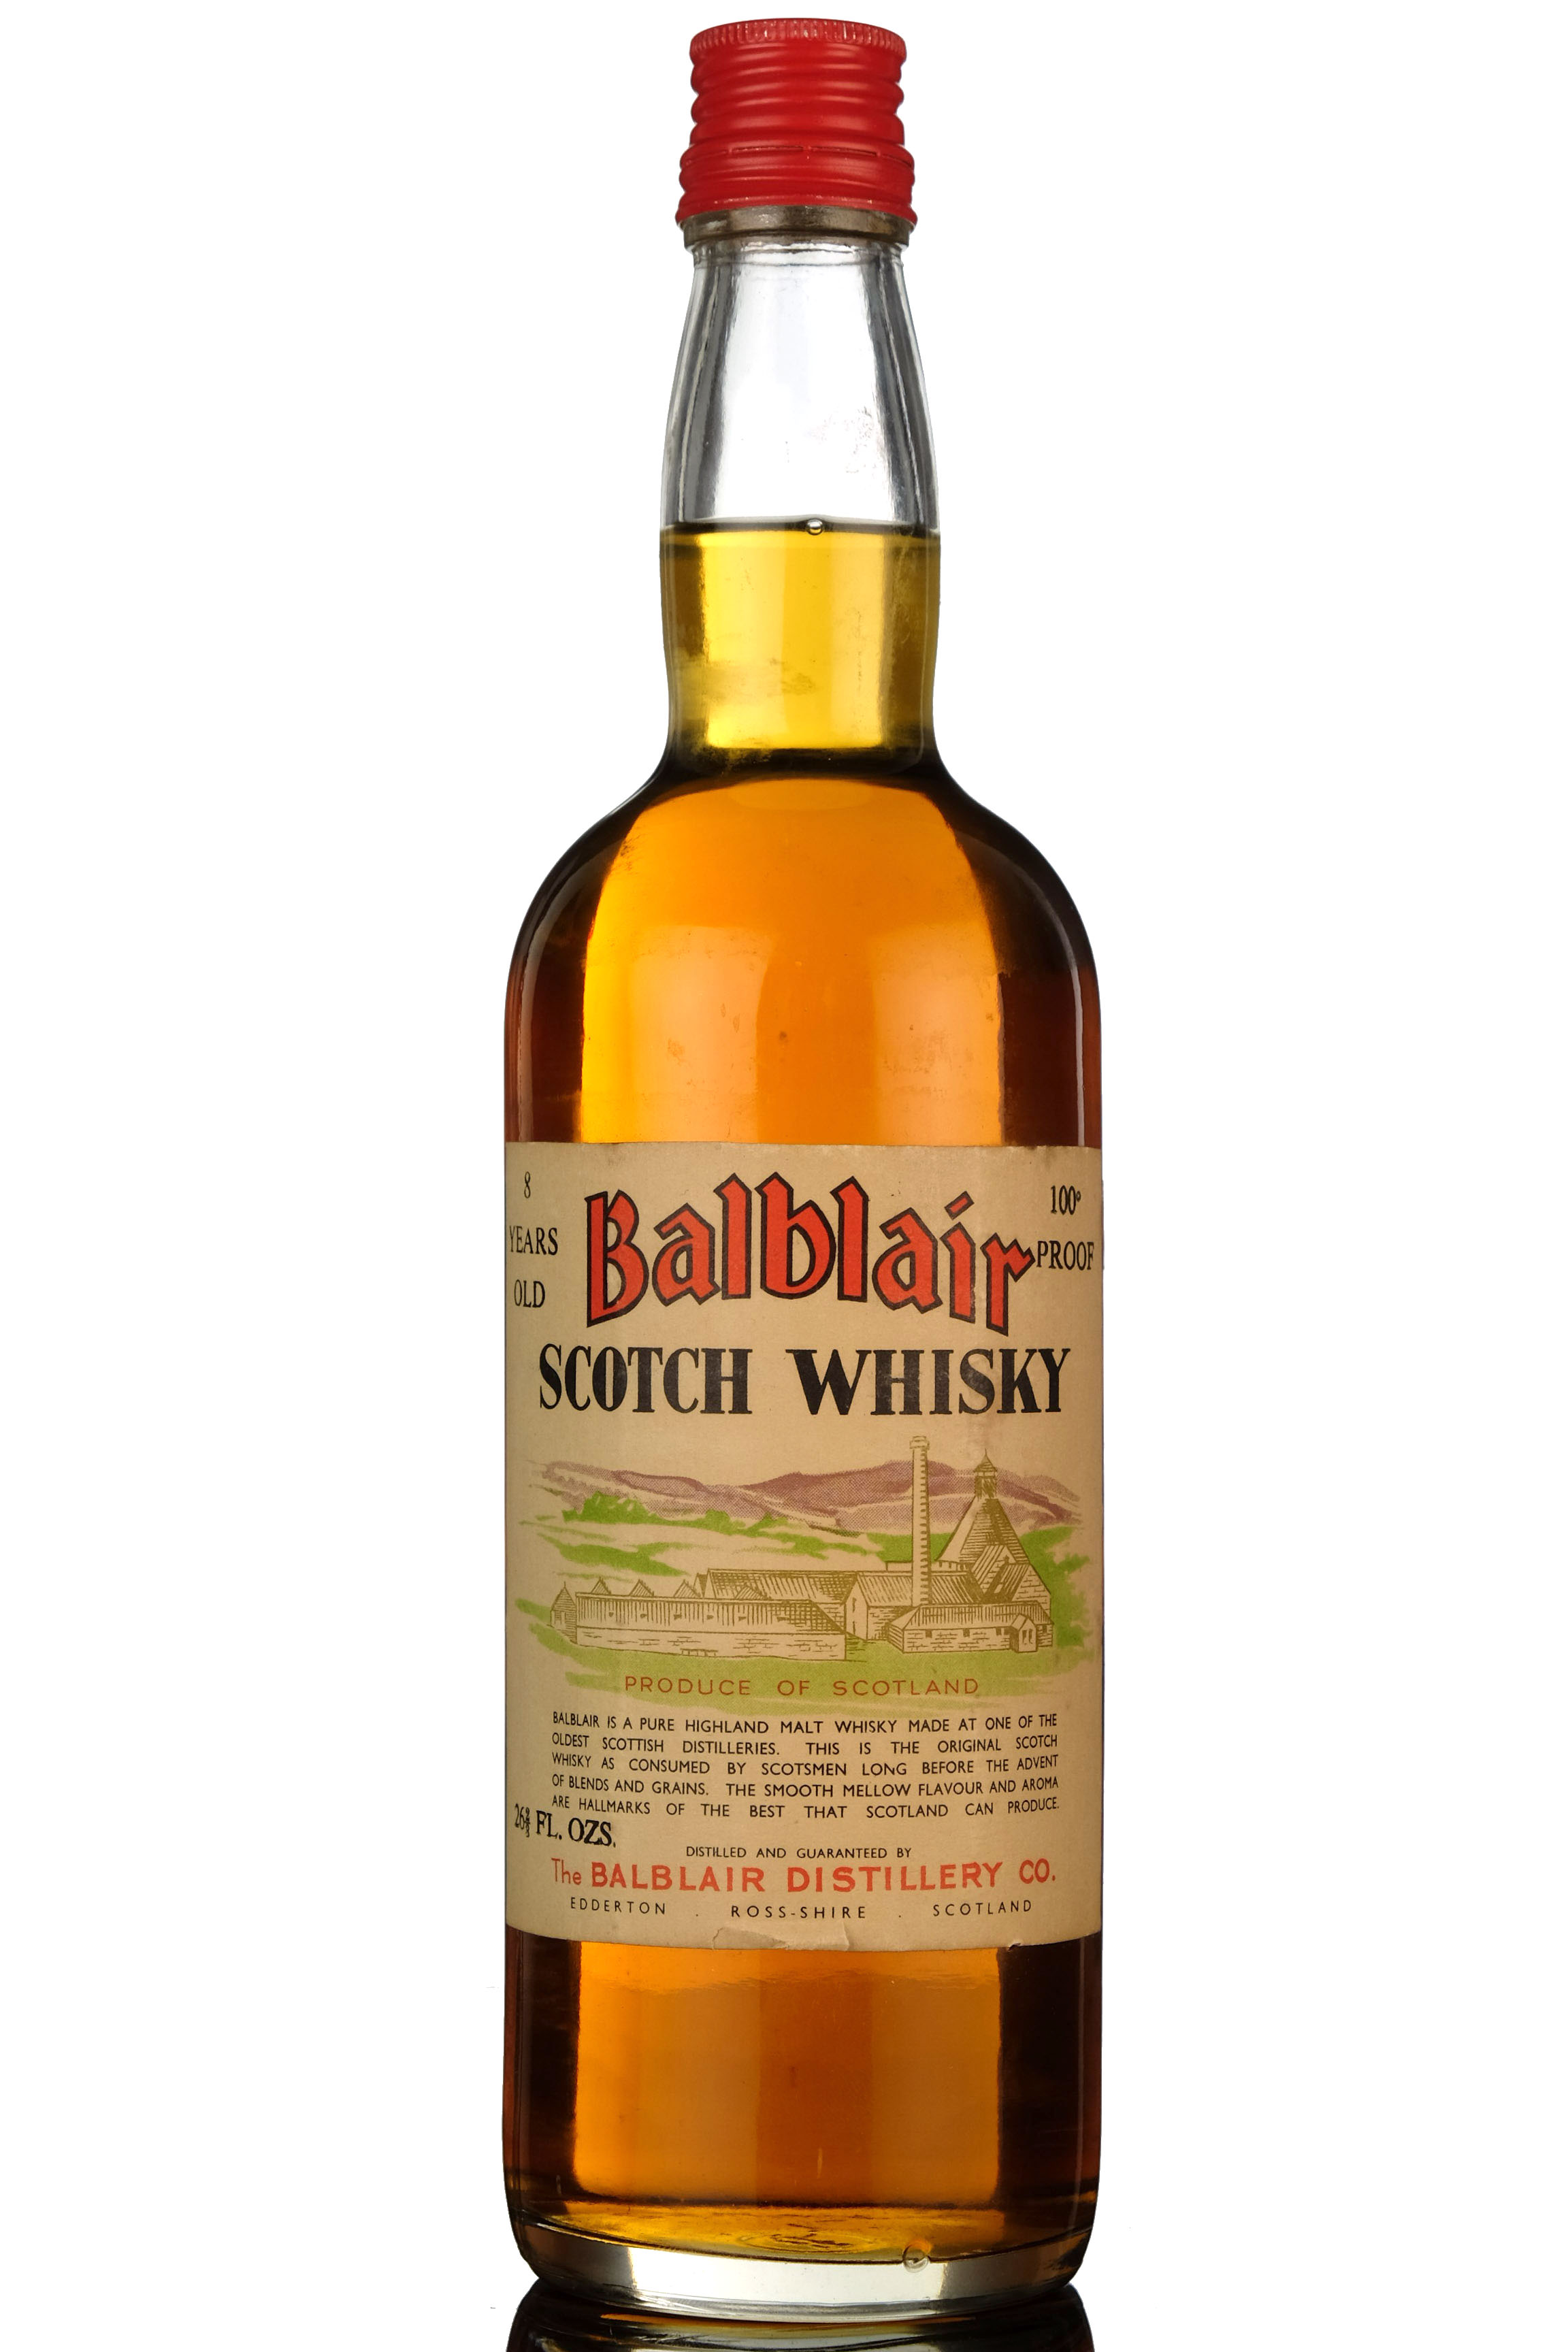 balblair 8 year old - 100 proof - early 1960s